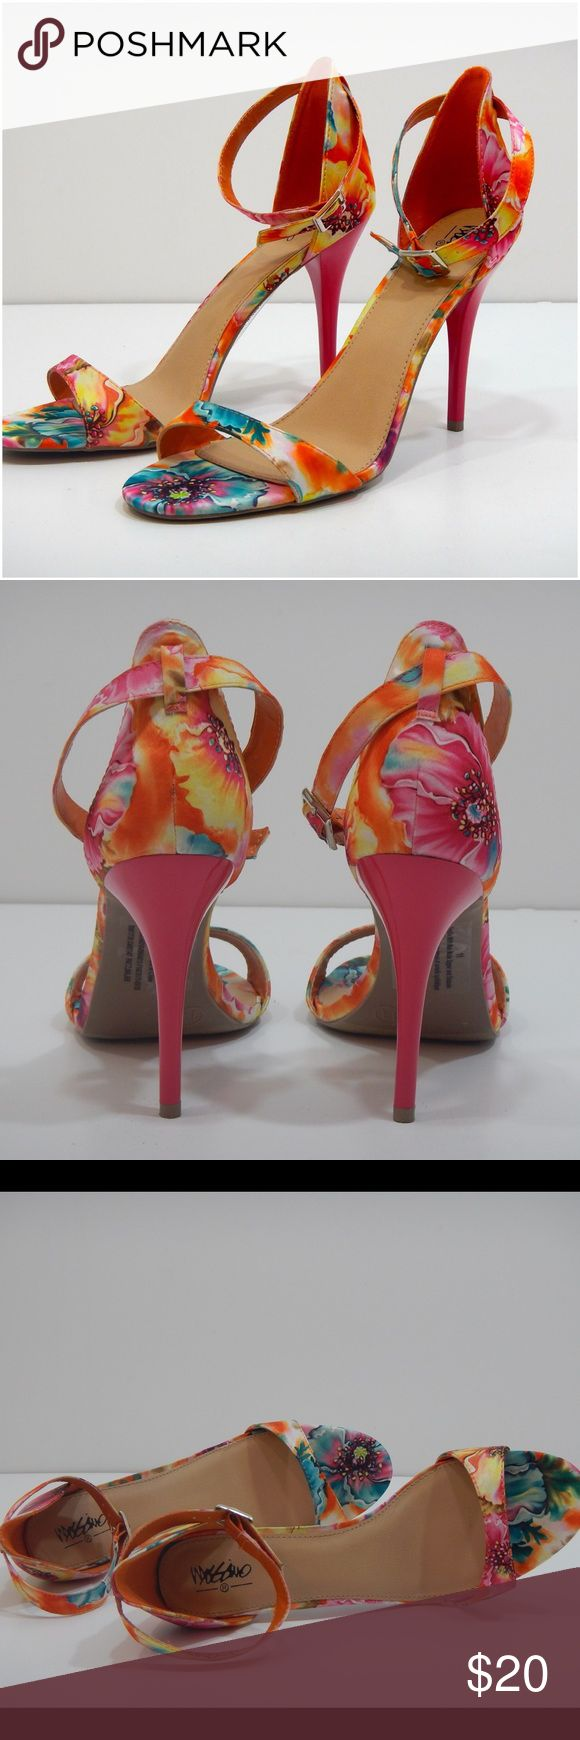 Floral ankle strap sandals - Mossimo Mossimo floral sandals with ankle strap. Only worn once mostly on carpet, just too high for me. Mossimo Shoes Sandals